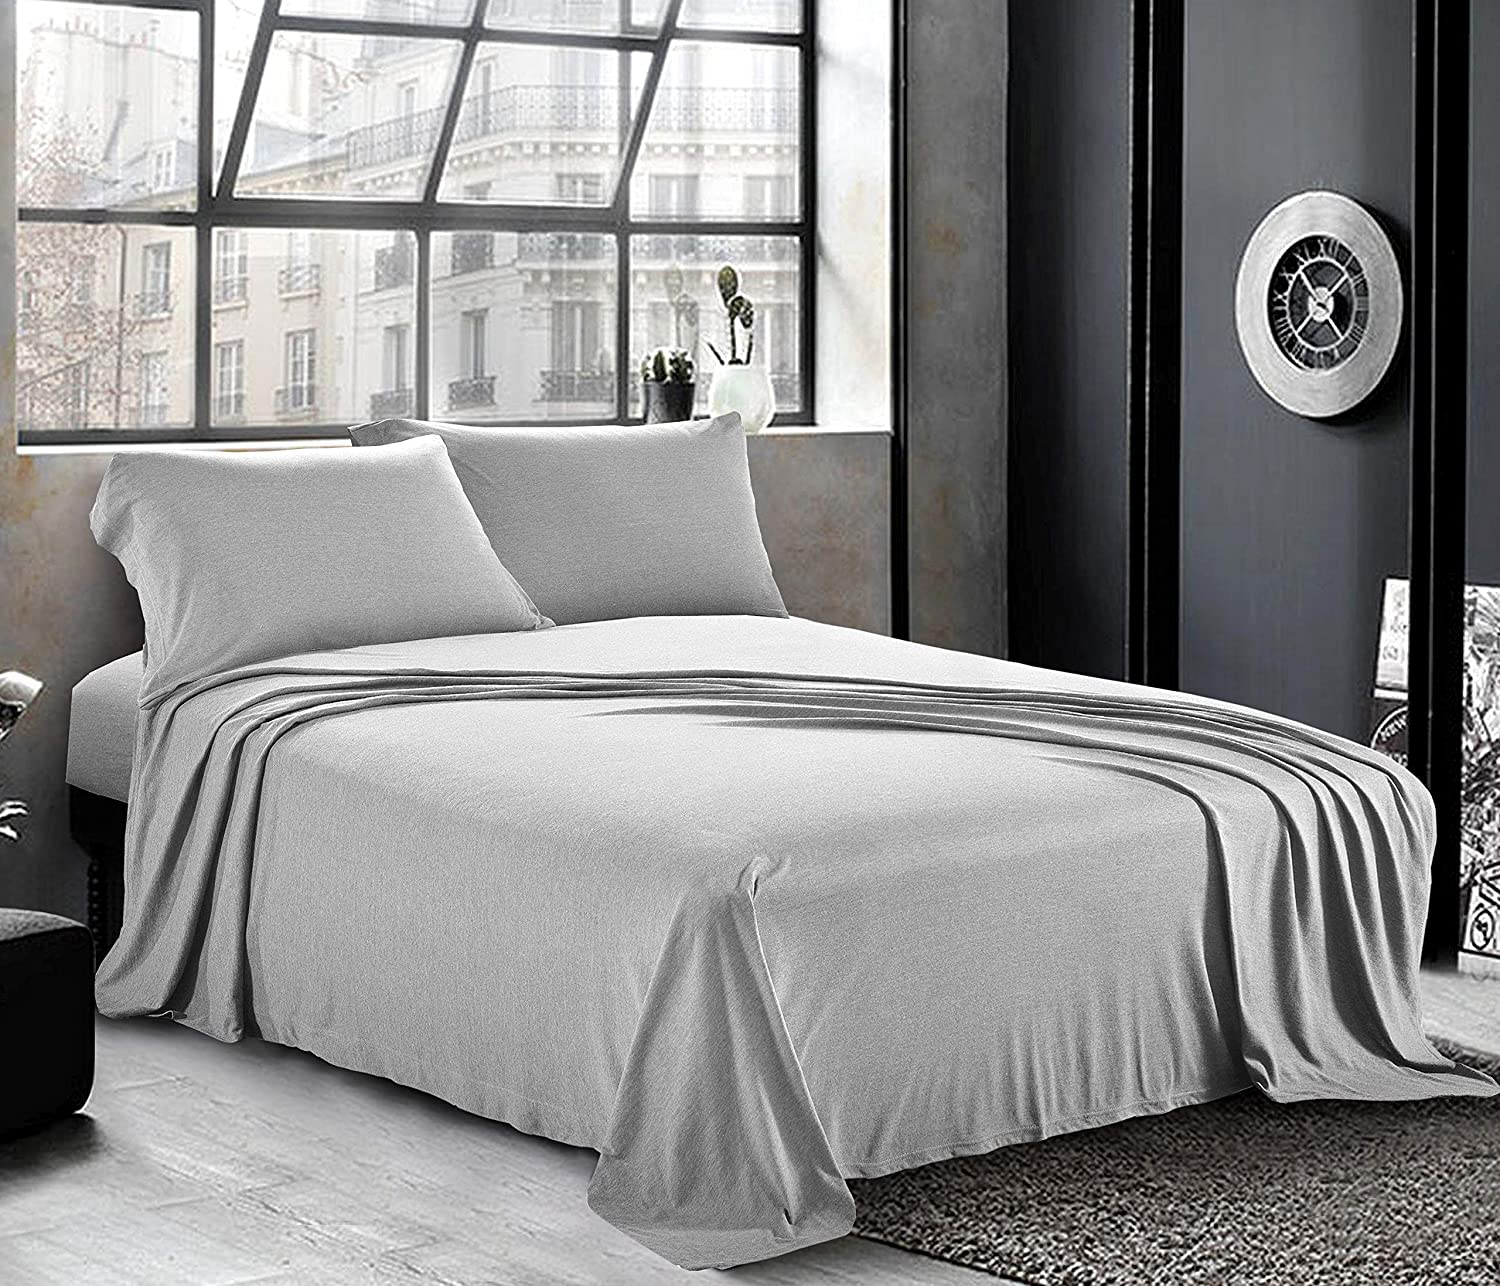 Jersey Sheets Twin/Twin XL [3-Piece, Light Gray] Hotel Luxury Bed Sheets - Extra Soft Cotton Sheet Set, Cozy T-Shirt All Season Heather Sheets - Deep Pocket Fitted Sheet, Flat Sheet, Pillow Cases